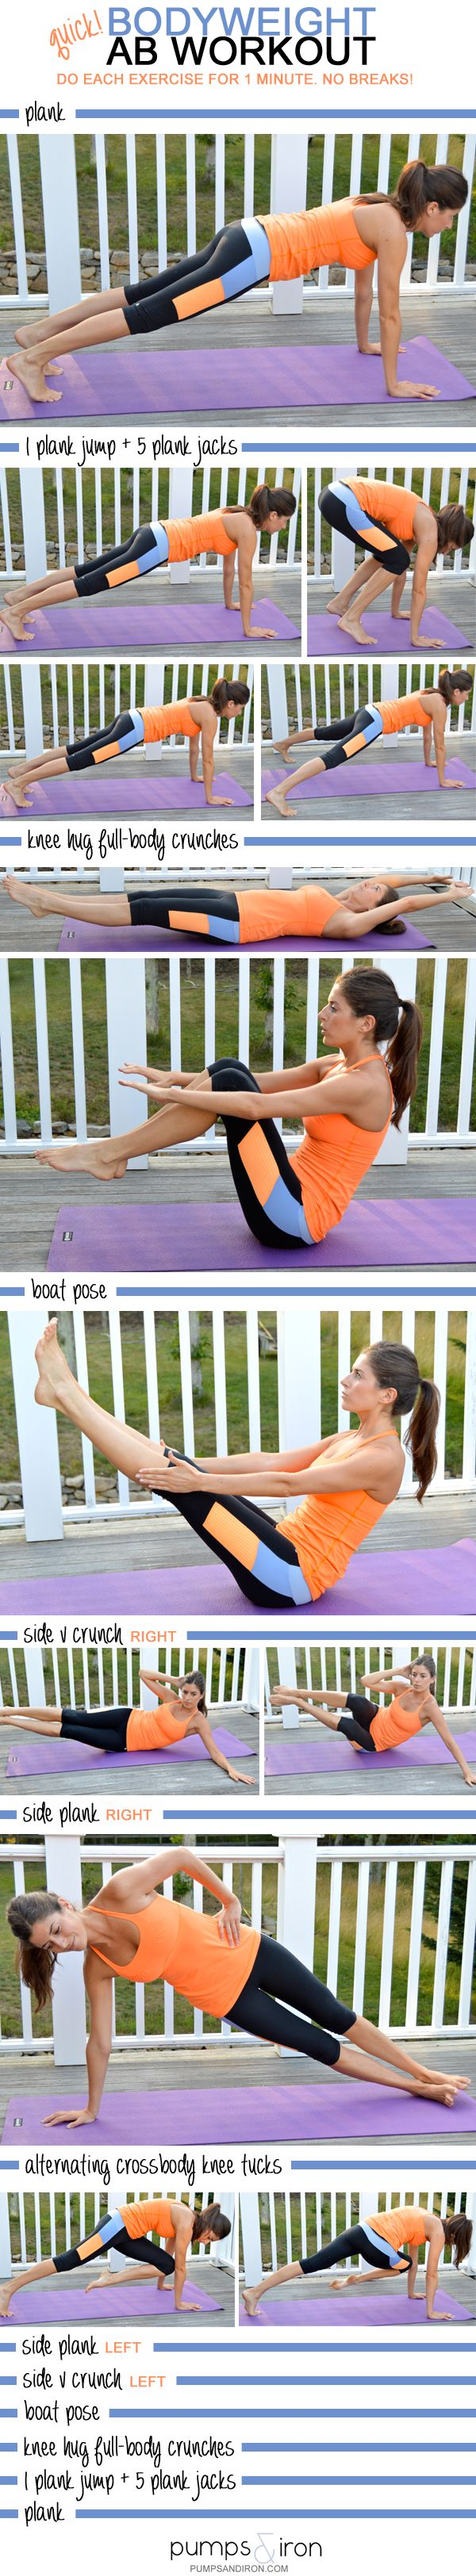 Quick Bodyweight Ab Workout -- takes just 13 minutes and requires no equipment